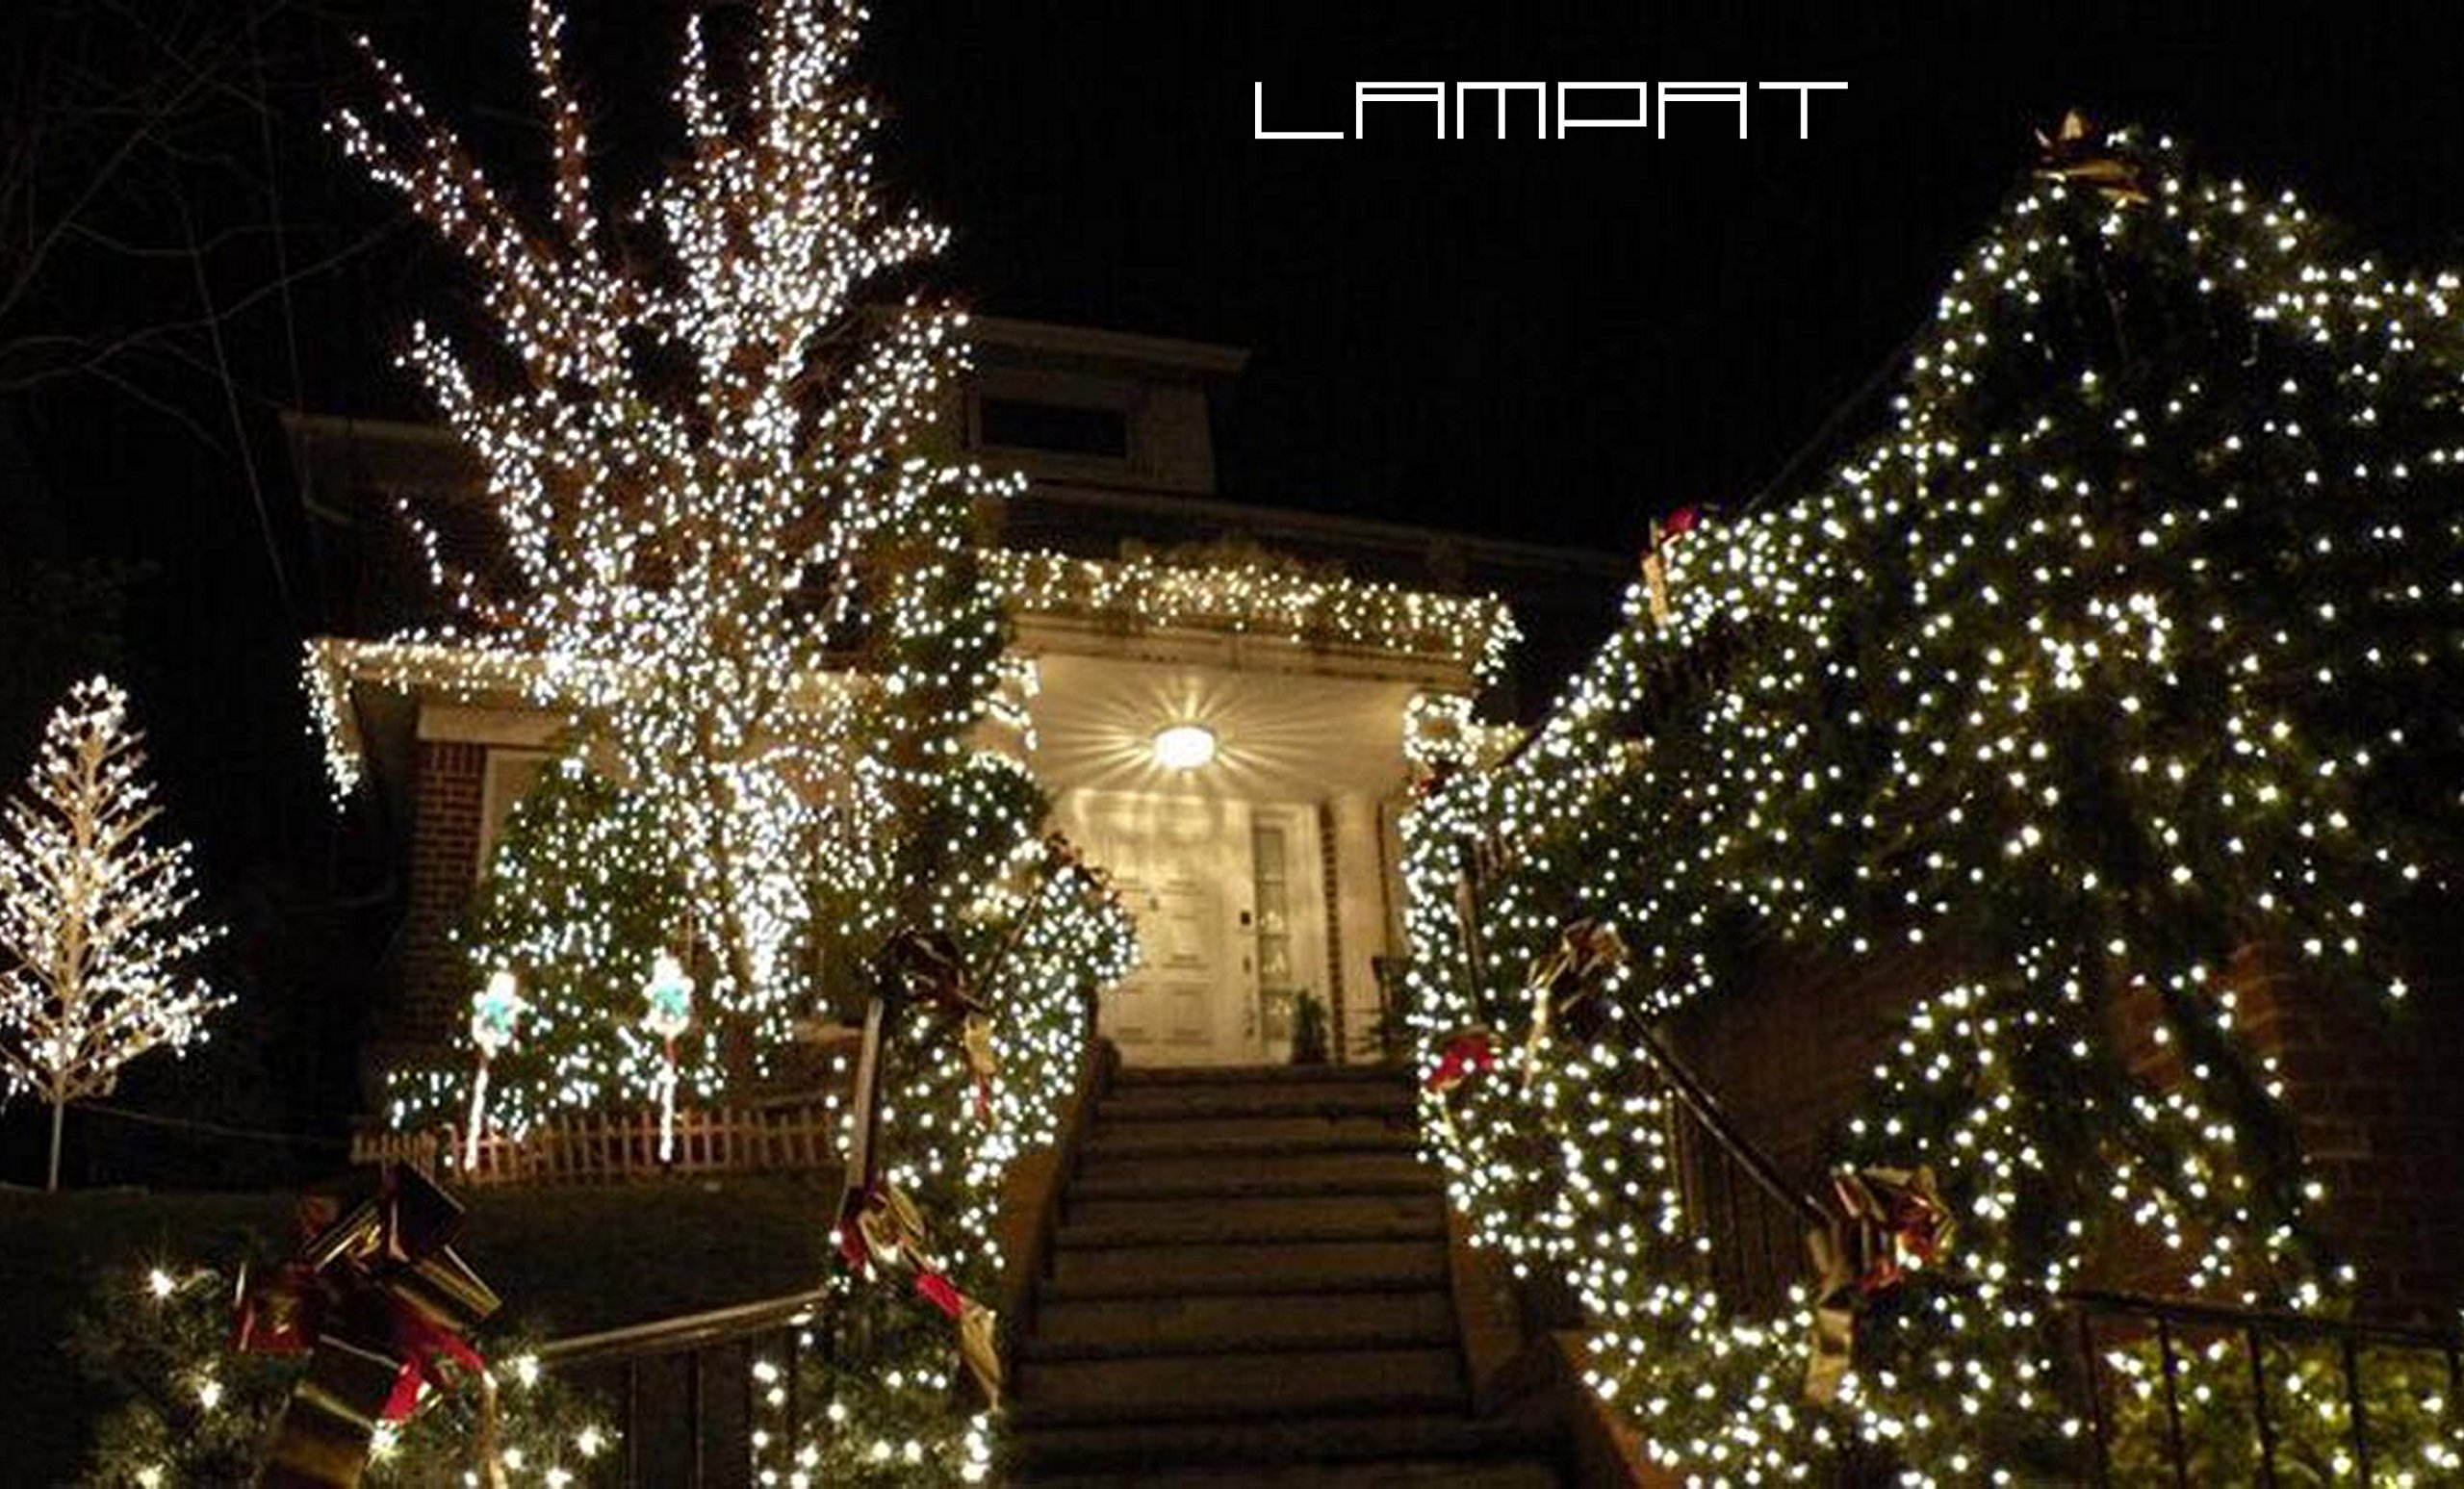 Solar string lights lampat 300 led holiday string lighting outdoor product description aloadofball Image collections